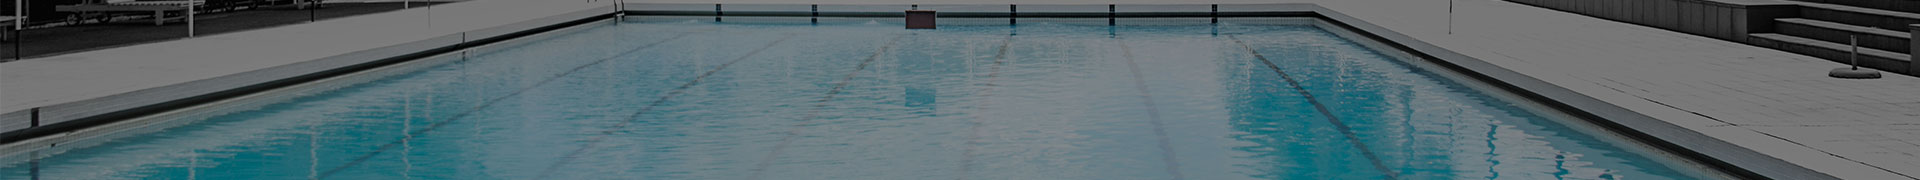 Experts In Pool Leak Detection Our Company And Qualified